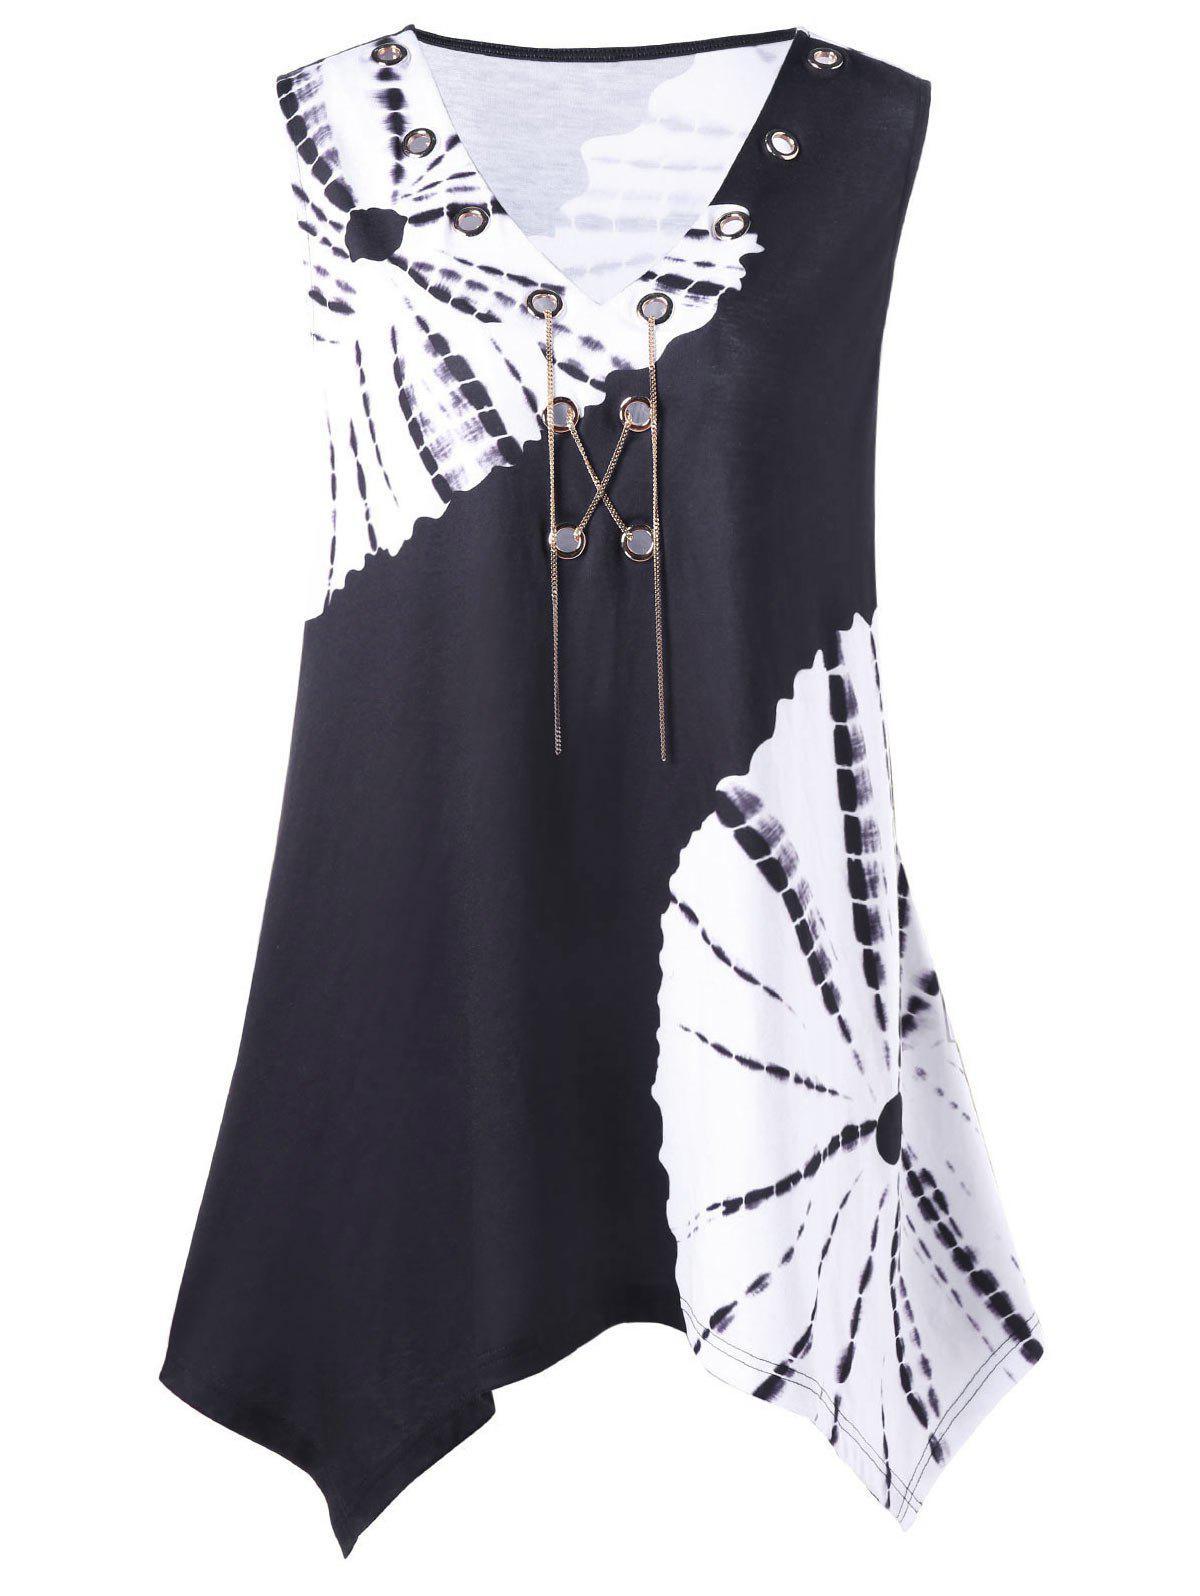 Plus Size Chains Detail Tie Dye T-Shirt - WHITE/BLACK 3XL